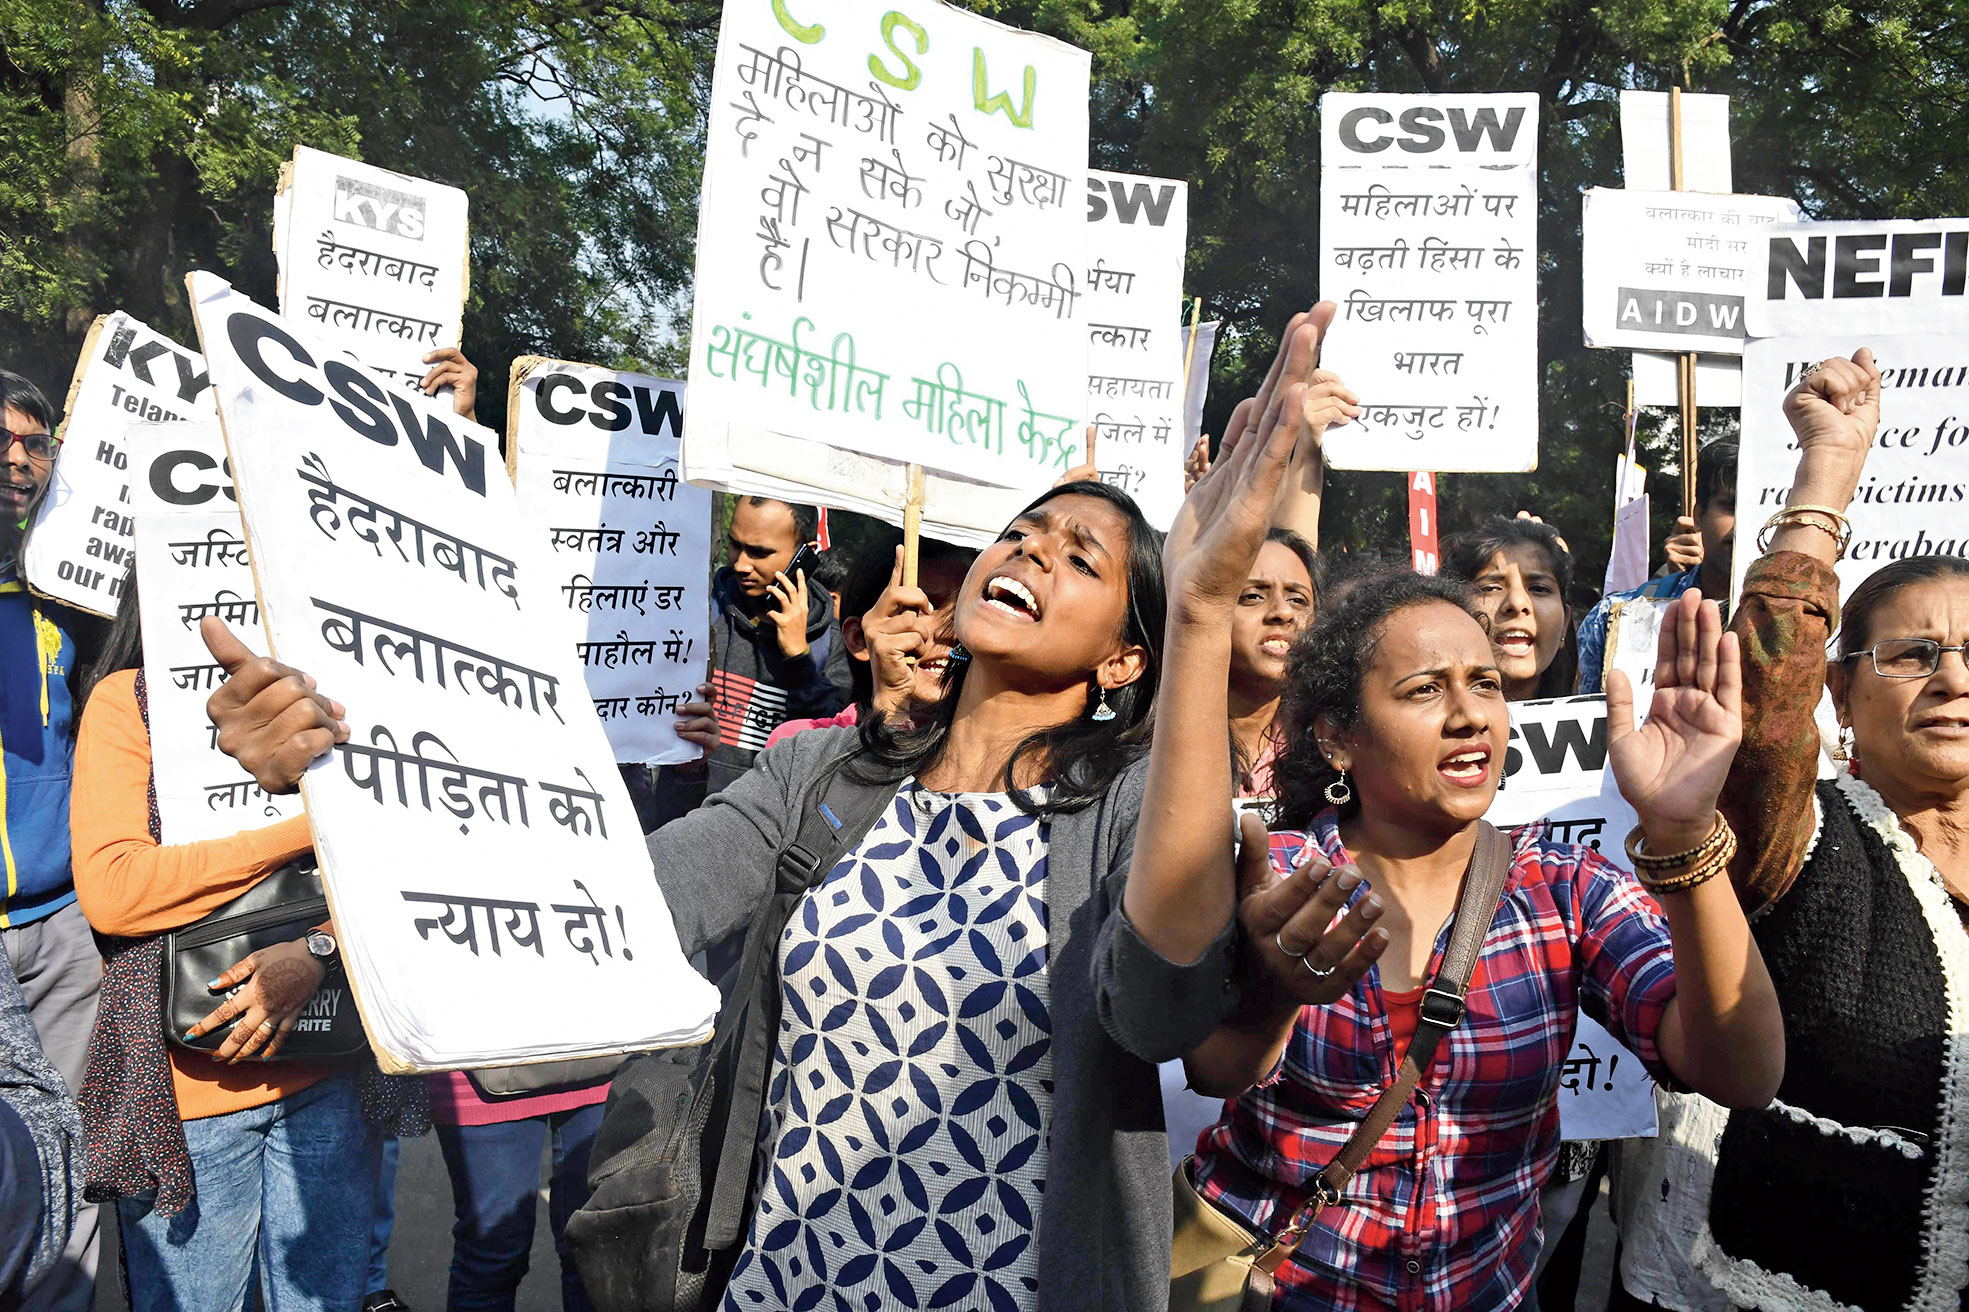 A protest in New Delhi on Monday against the gang rape and murder of the veterinarian near Hyderabad.